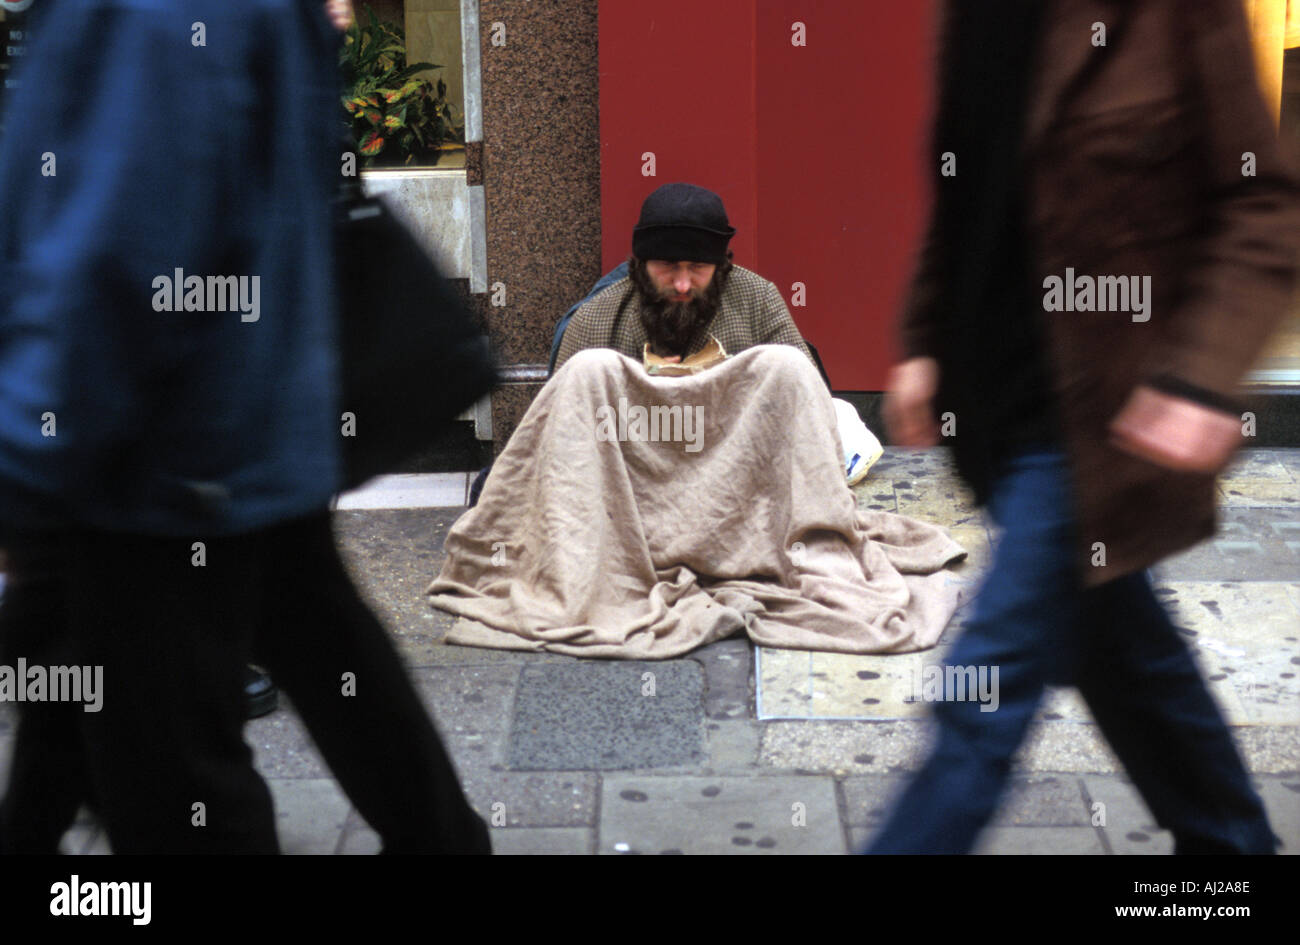 People passing homeless man begging on street, London, England, UK - Stock Image